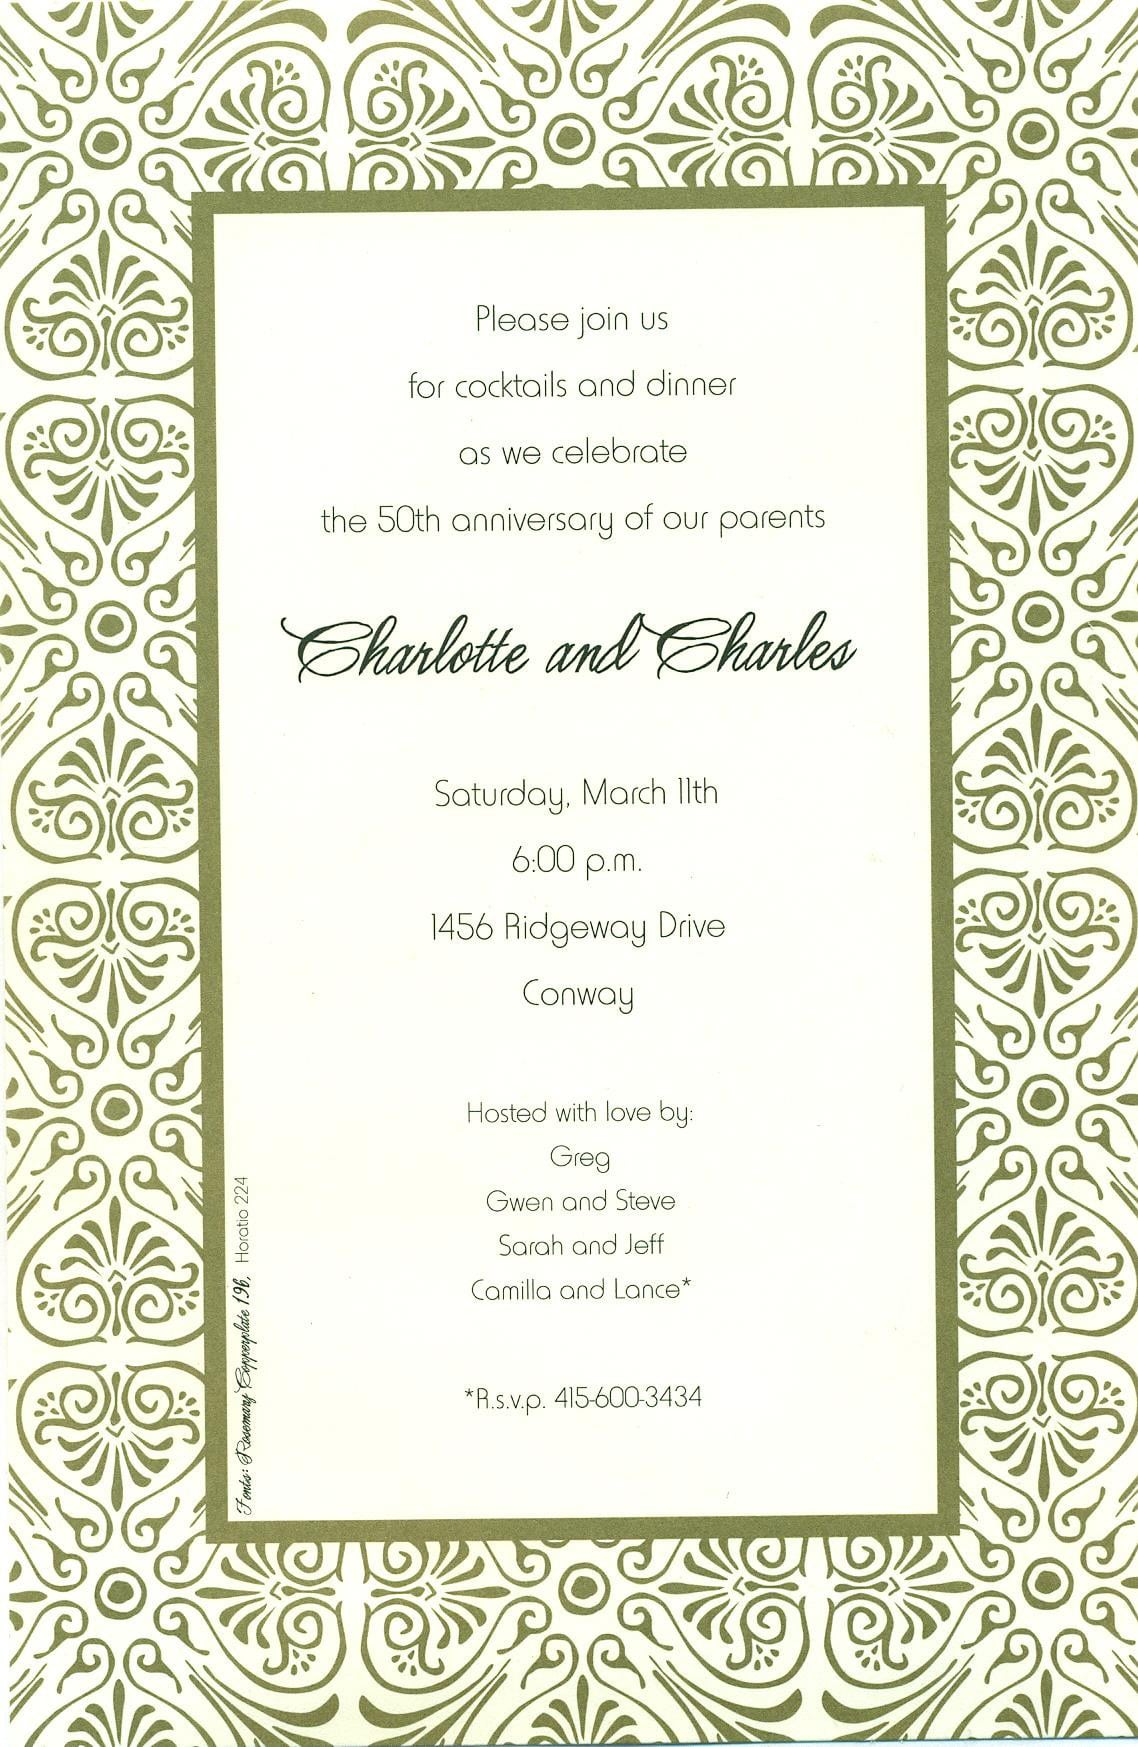 dinner invitation template ctsfashion com dinner invitation templates best images of dinner